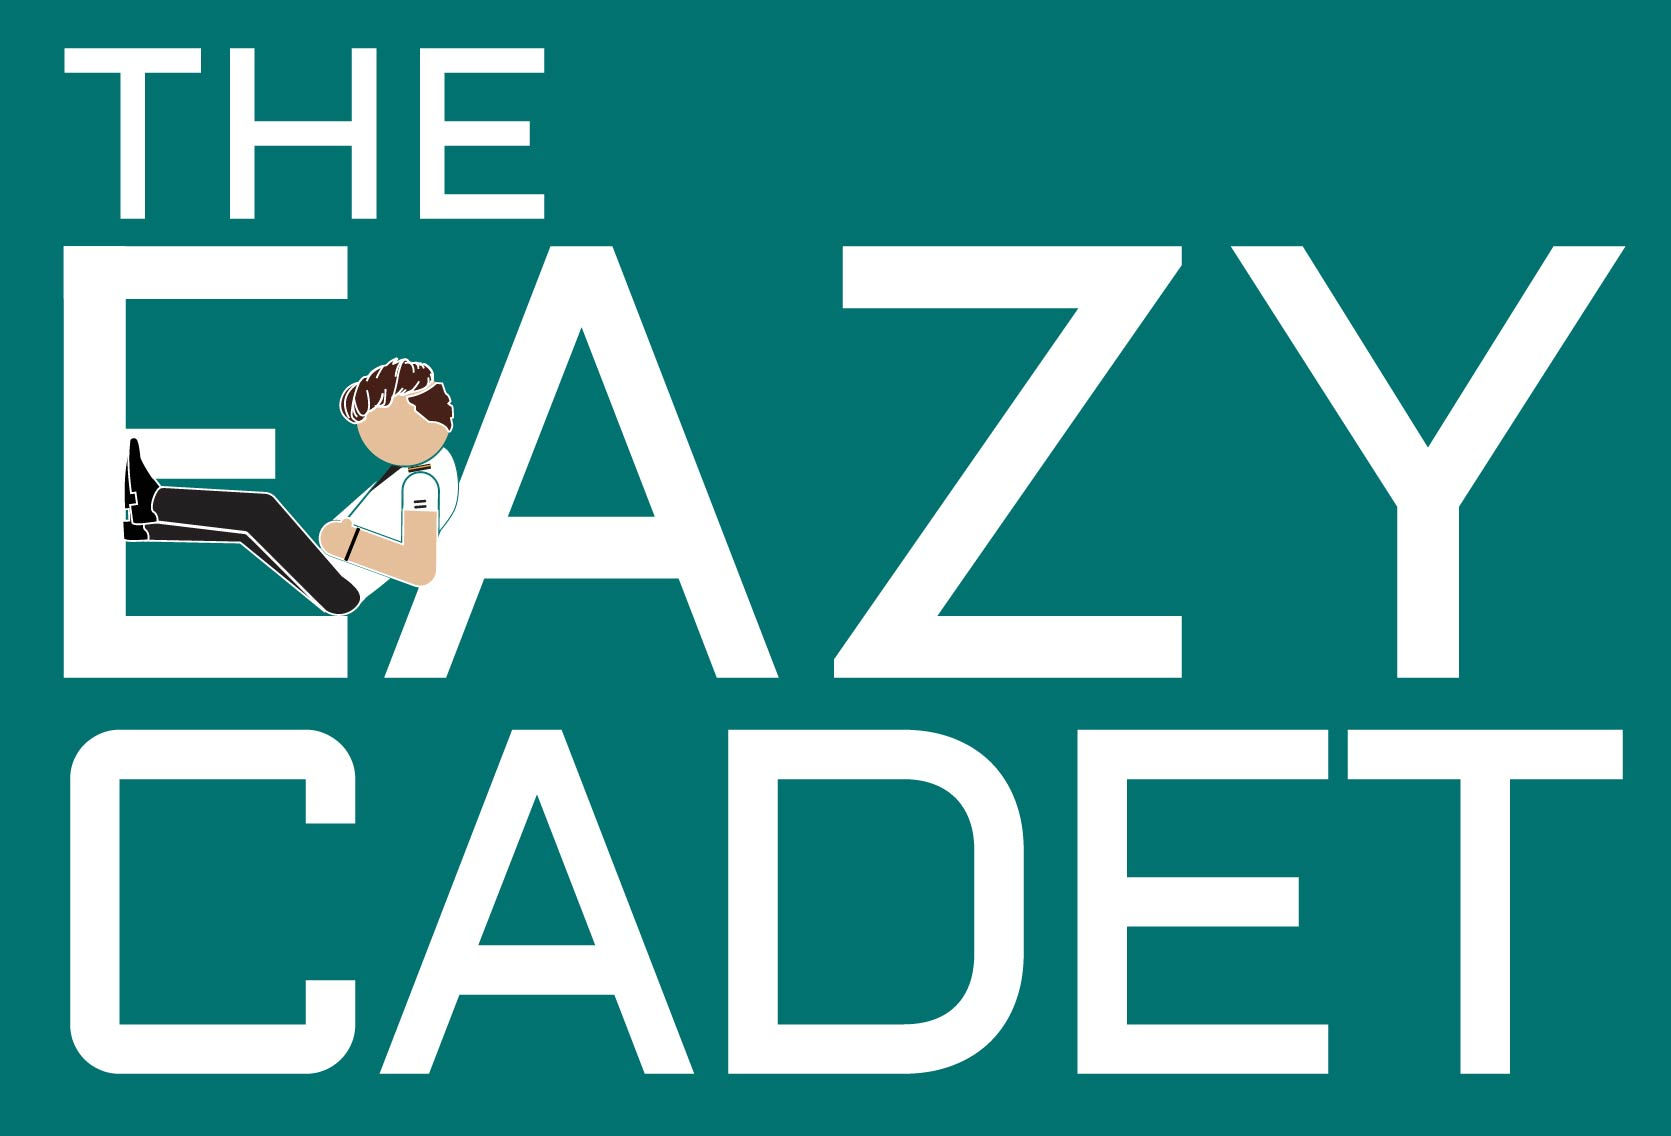 The Eazy Cadet